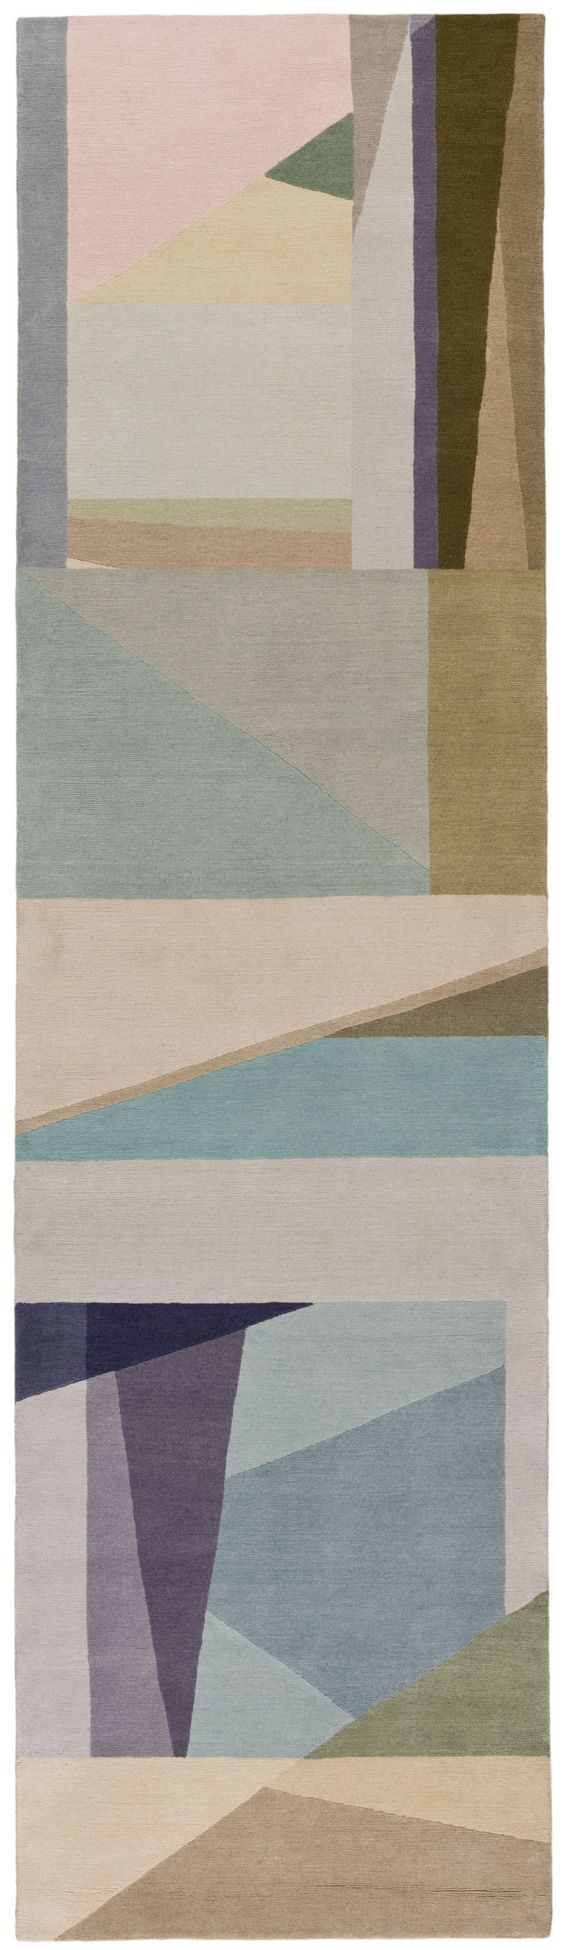 Paul Smith x The Rug Company - Refracted Light Runner